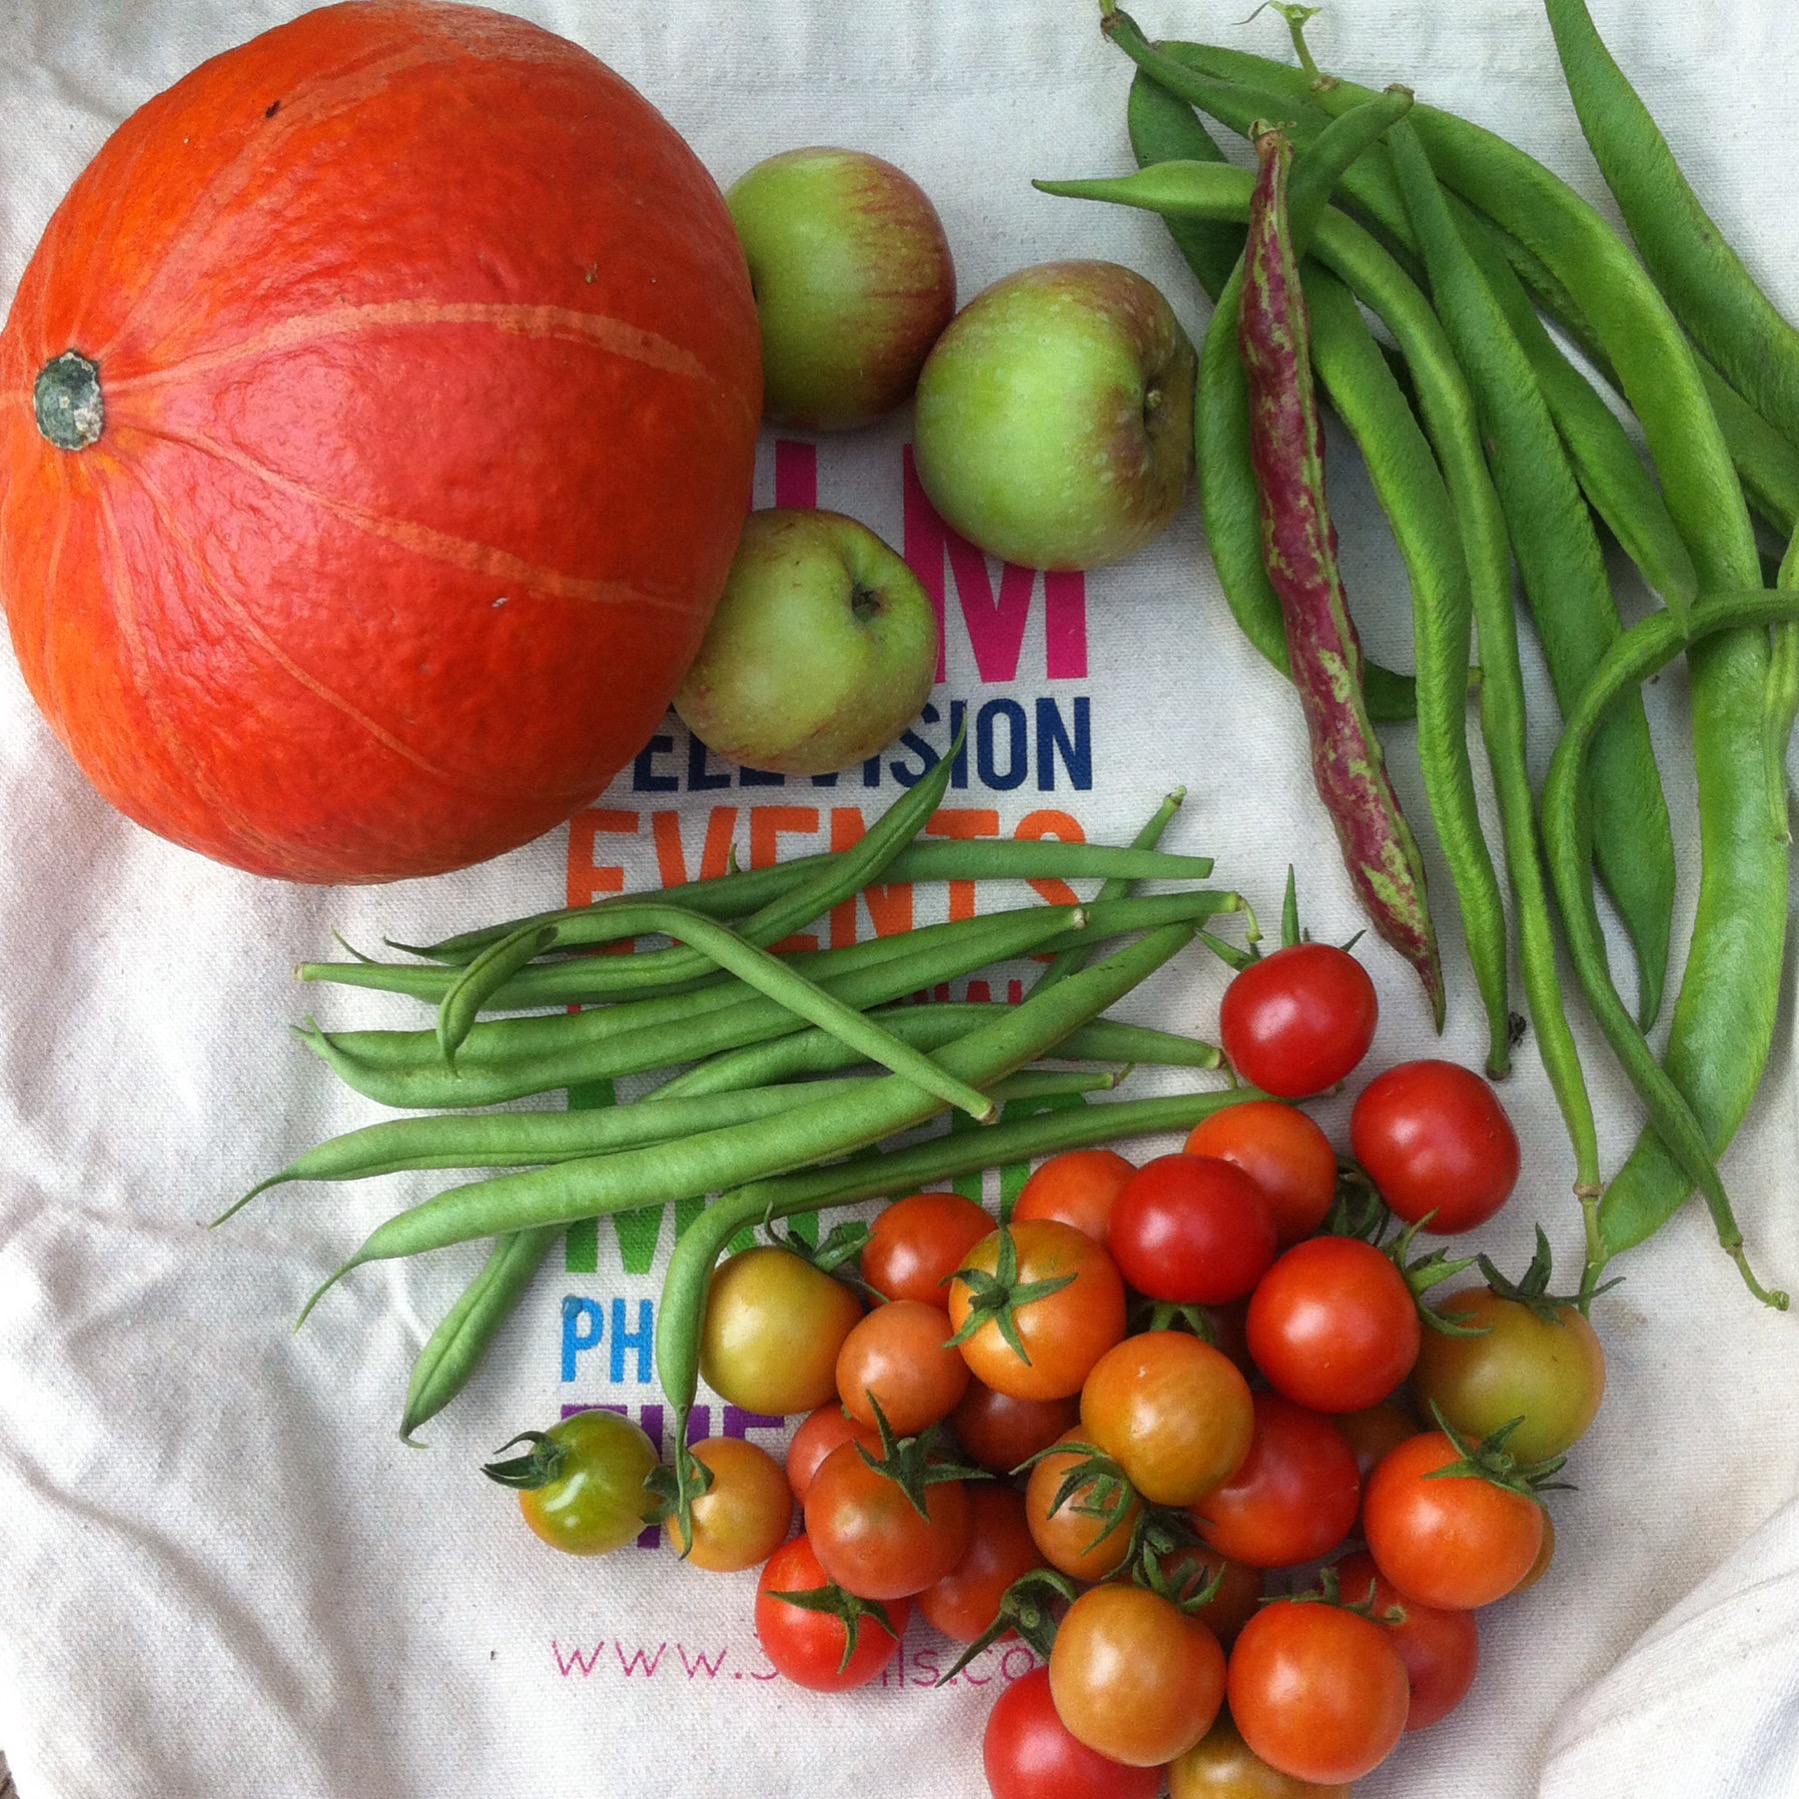 THE HARVEST FROM OUR ALLOTMENT